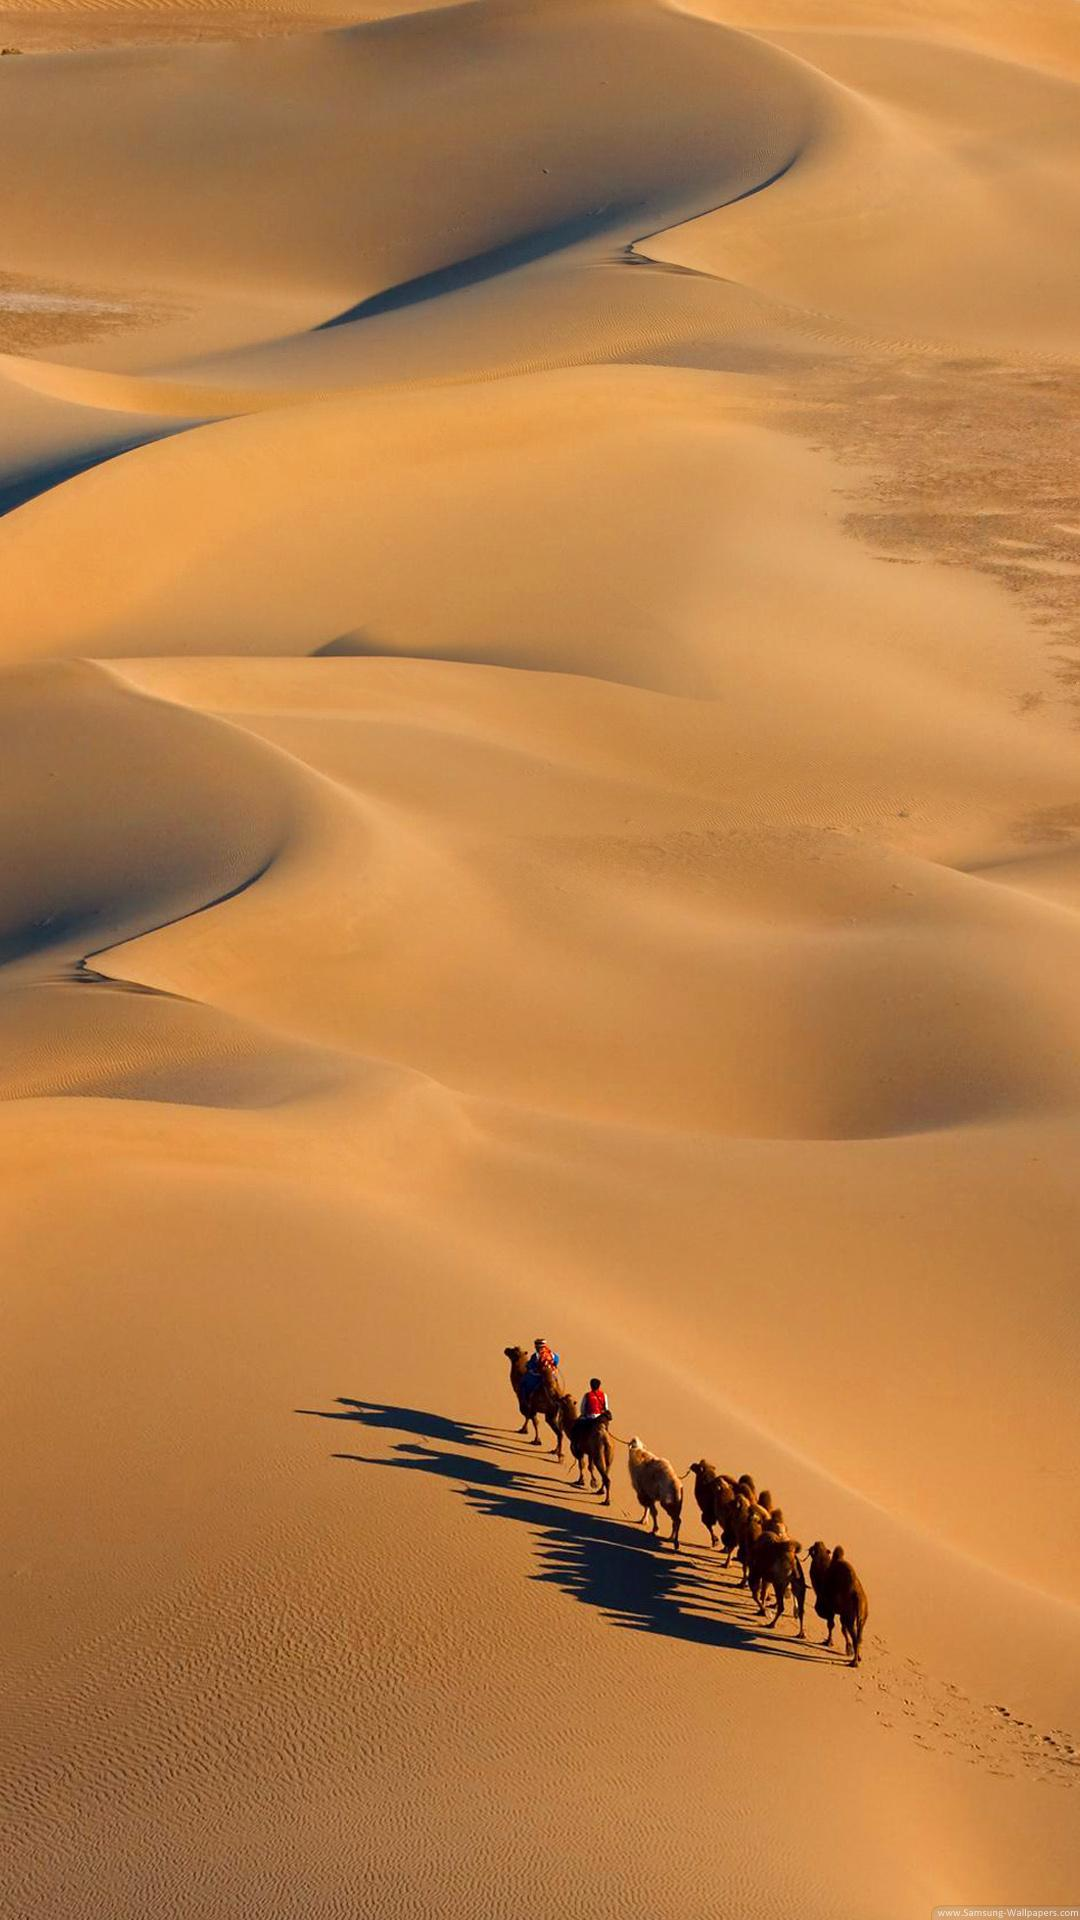 Desert Hd Wallpaper For Android Apk Download